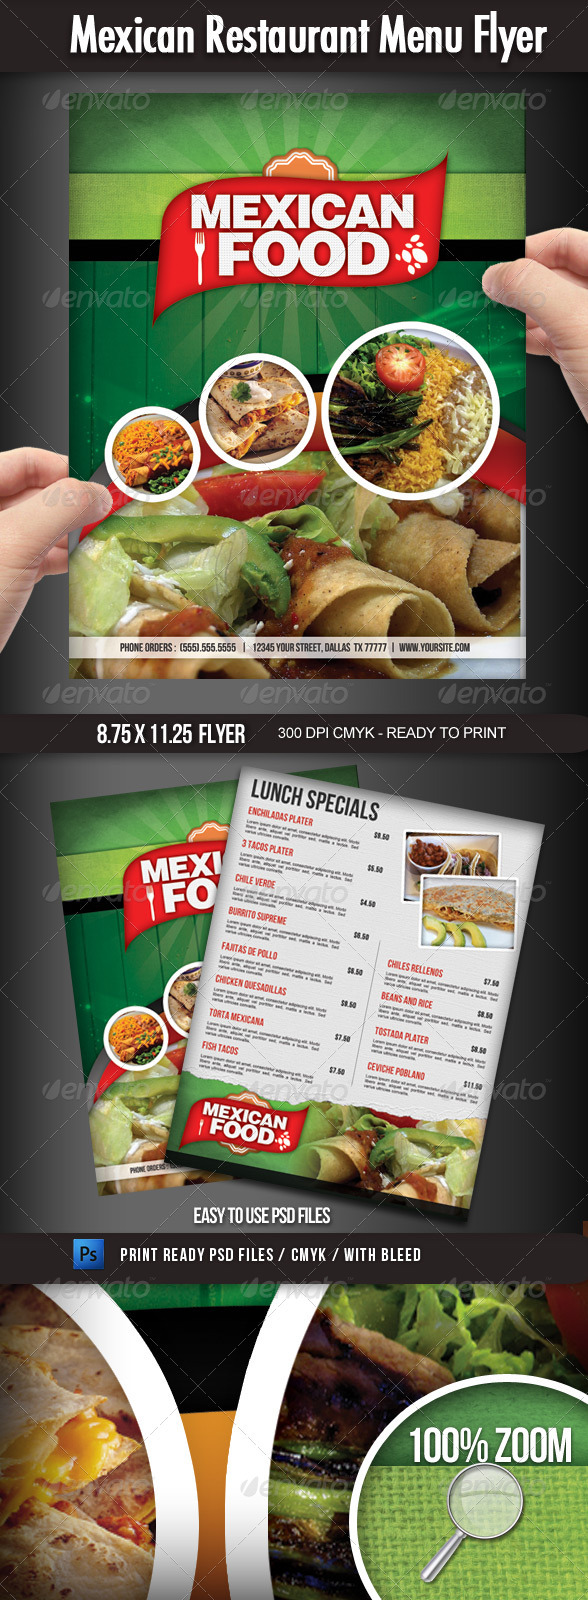 Mexican Restaurant Menu Flyer  - Food Menus Print Templates